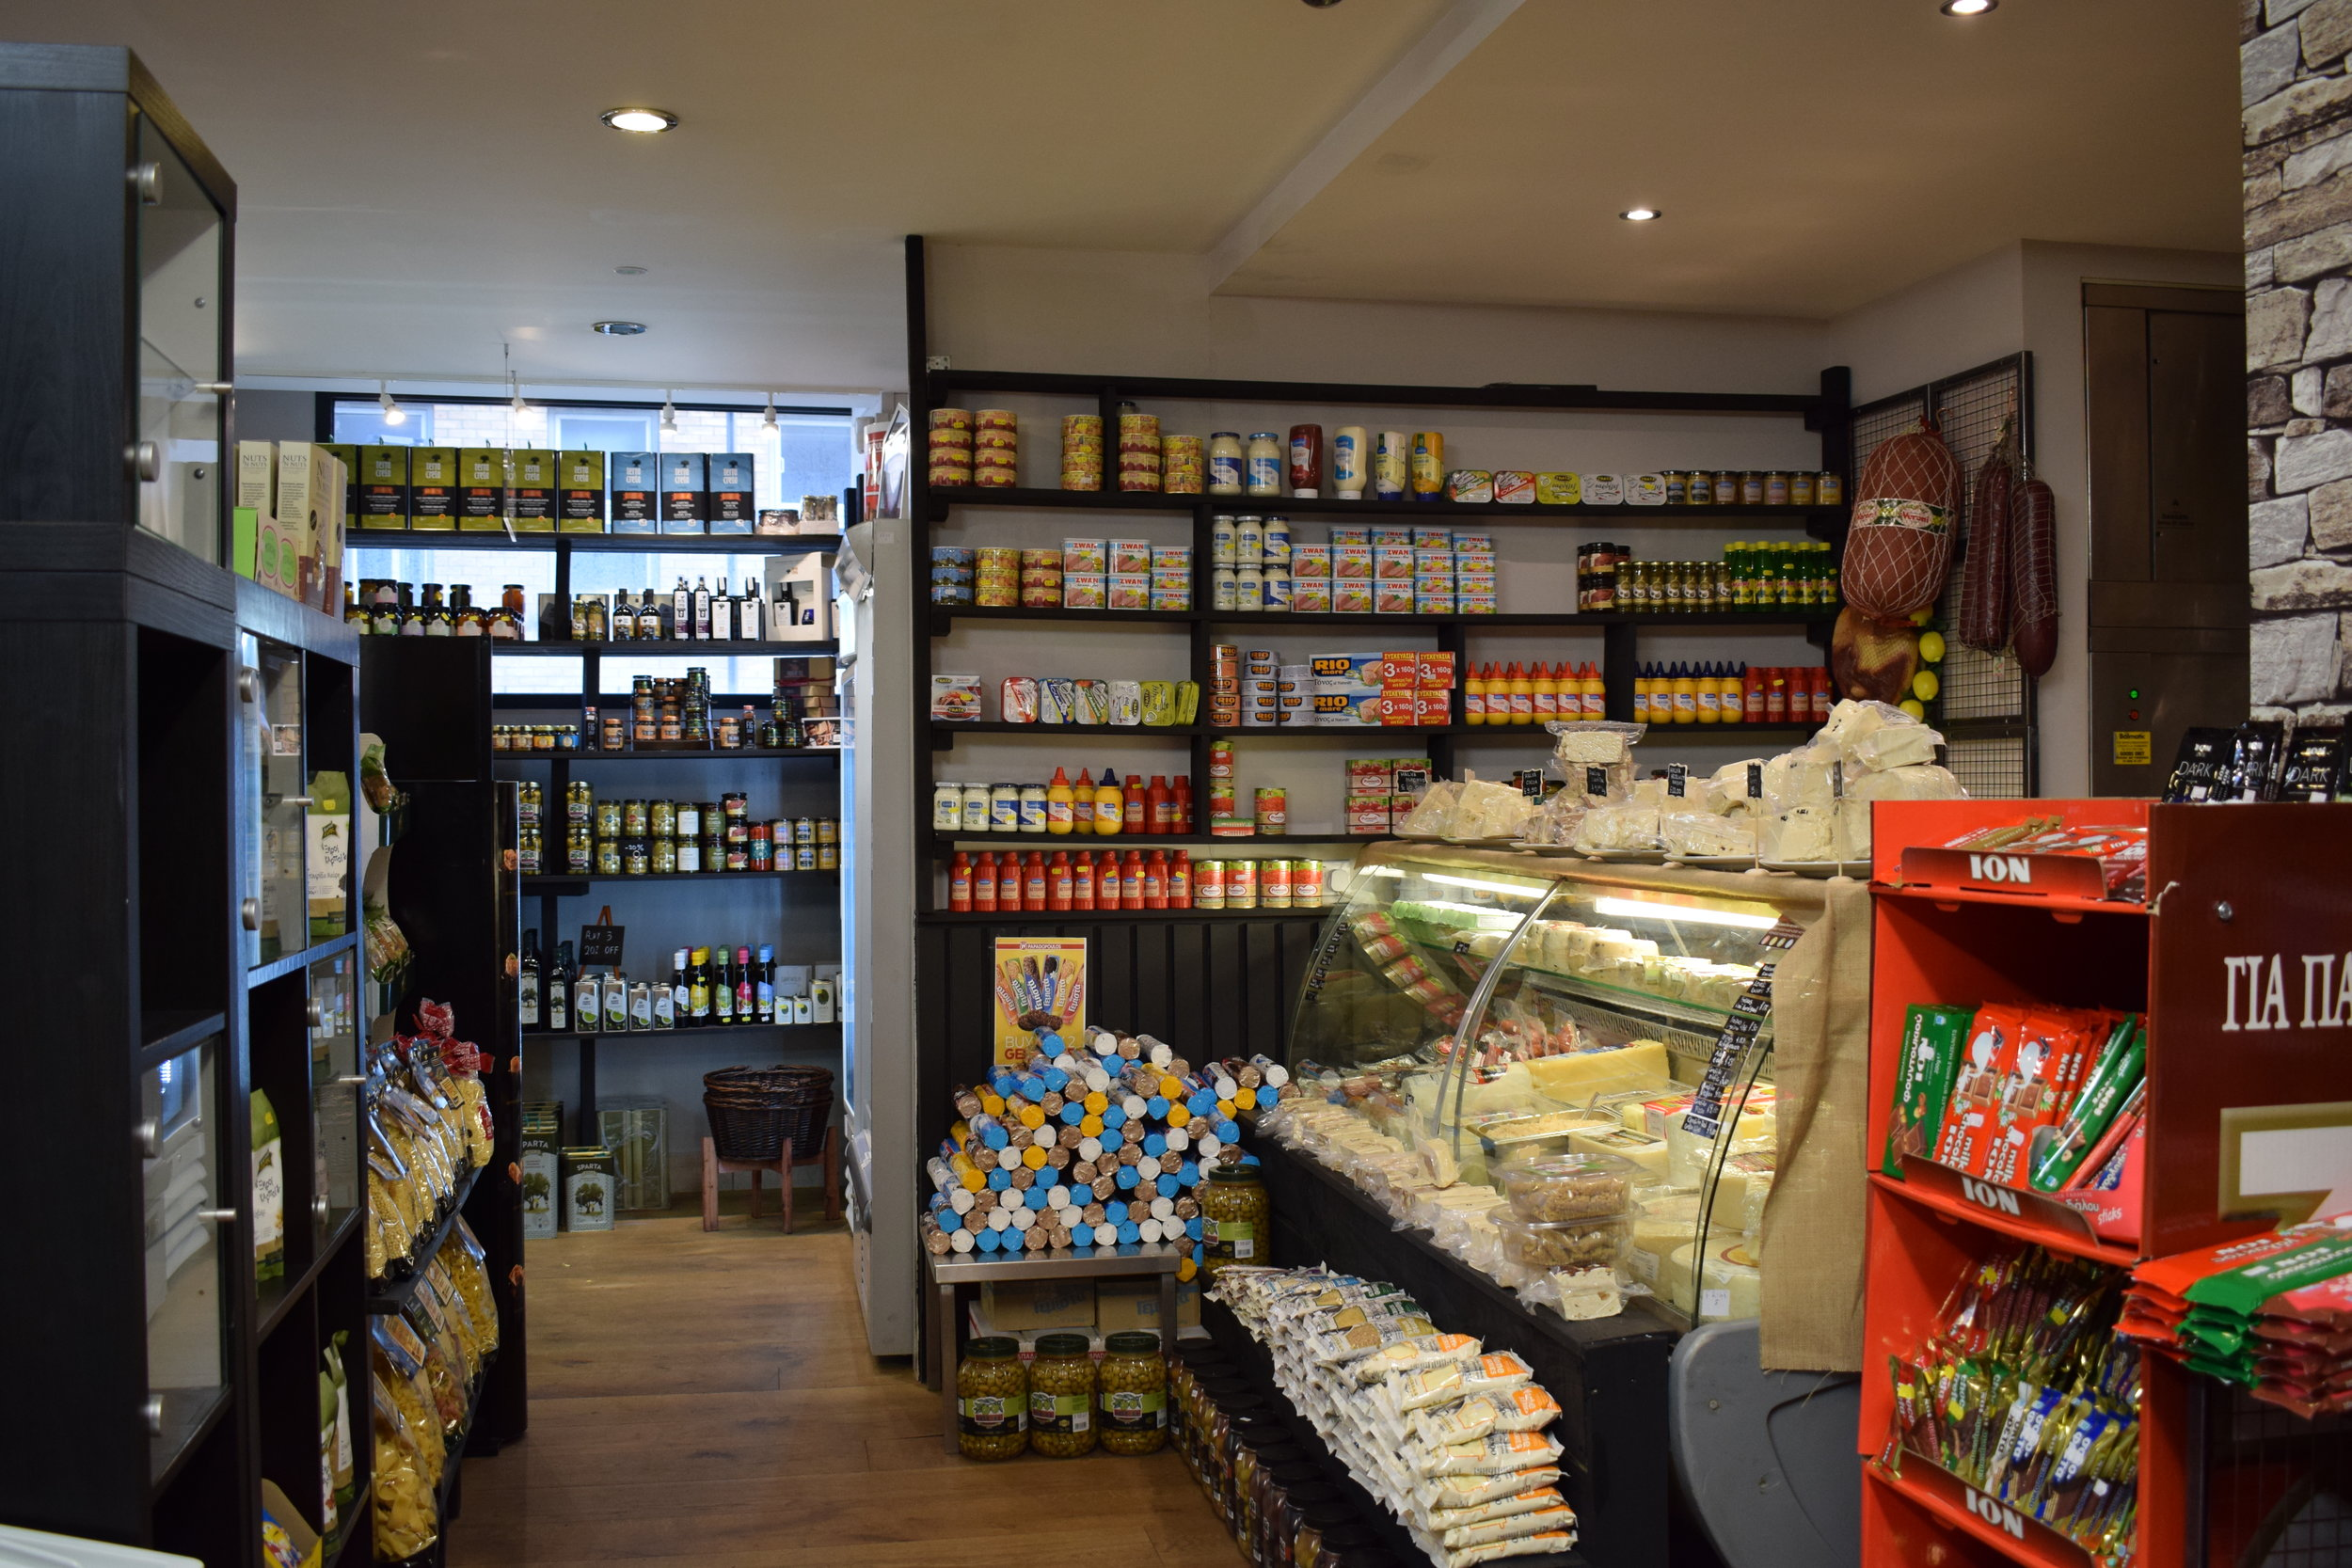 Visit the Bakaliko GReat in Clerkenwell for a deli filled with delicious Greek produce. Photo from Bakaliko GReat